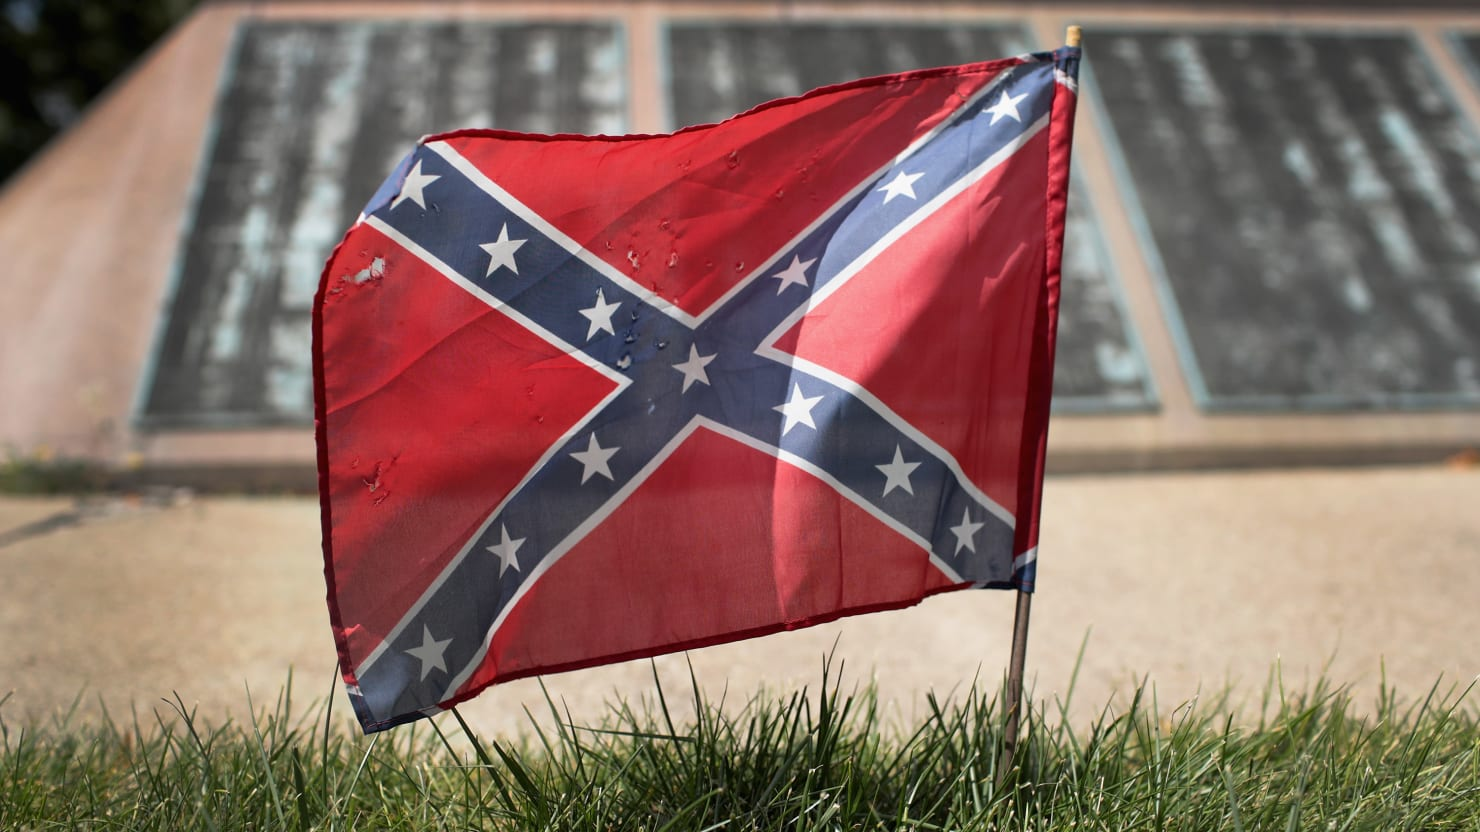 Marine Commandant Calls for Removal of Confederate Symbols From Marine Installations